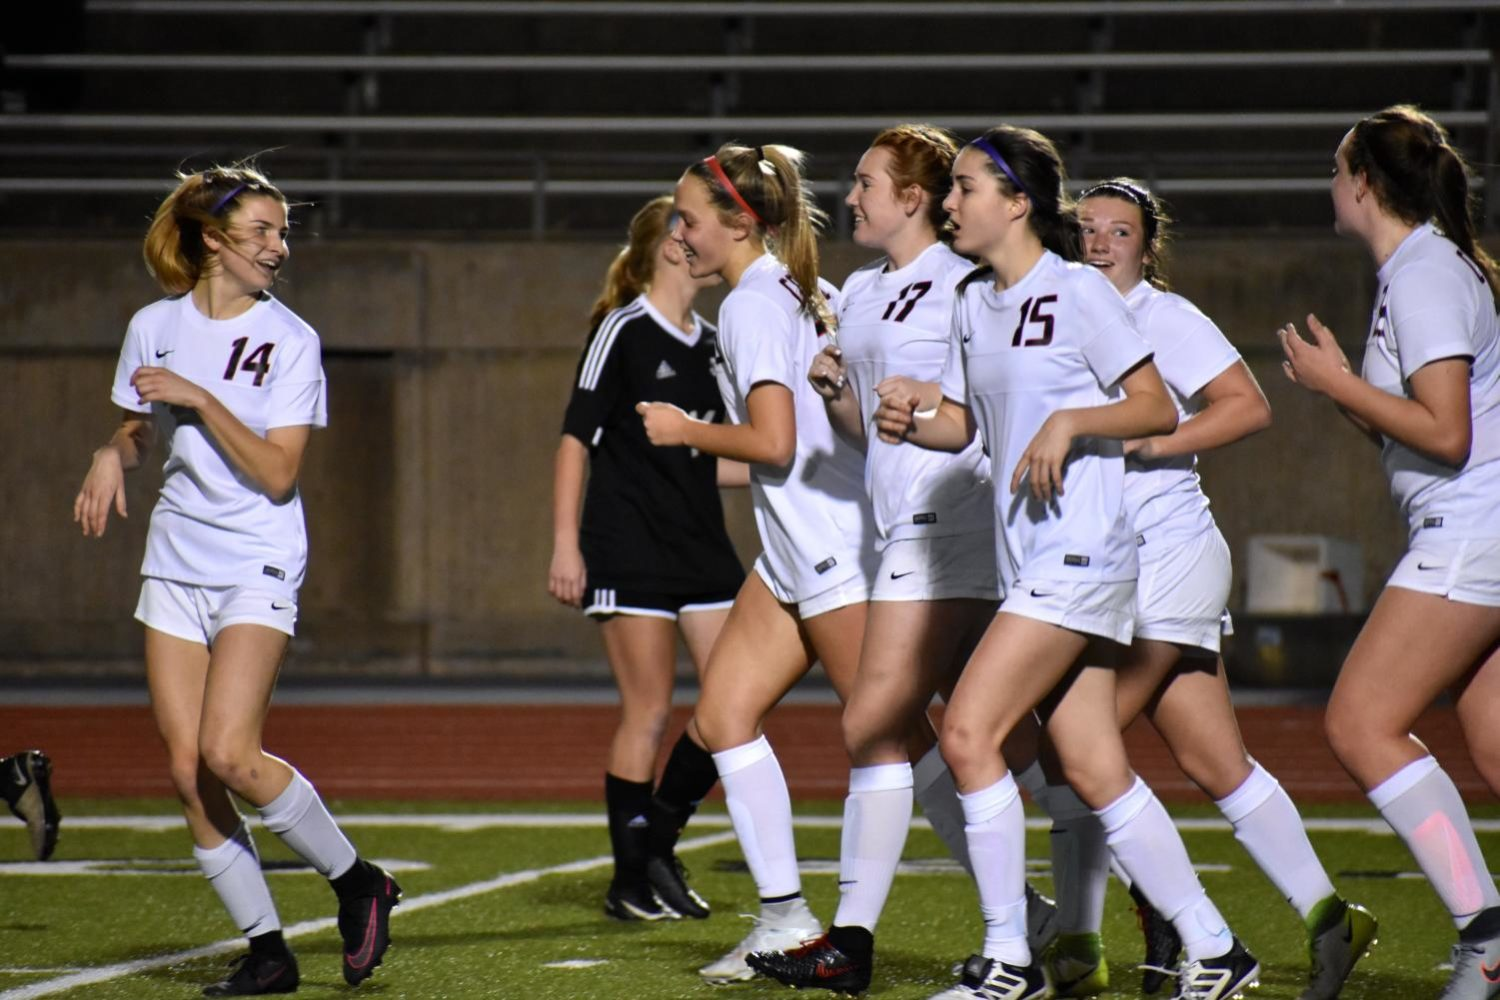 The Coppell girls soccer team celebrates after a goal during a match against Lake Highlands in the 2017-2018 season. The Cowgirls will play Paschal on Tuesday at 7:30 p.m. at CHS9.